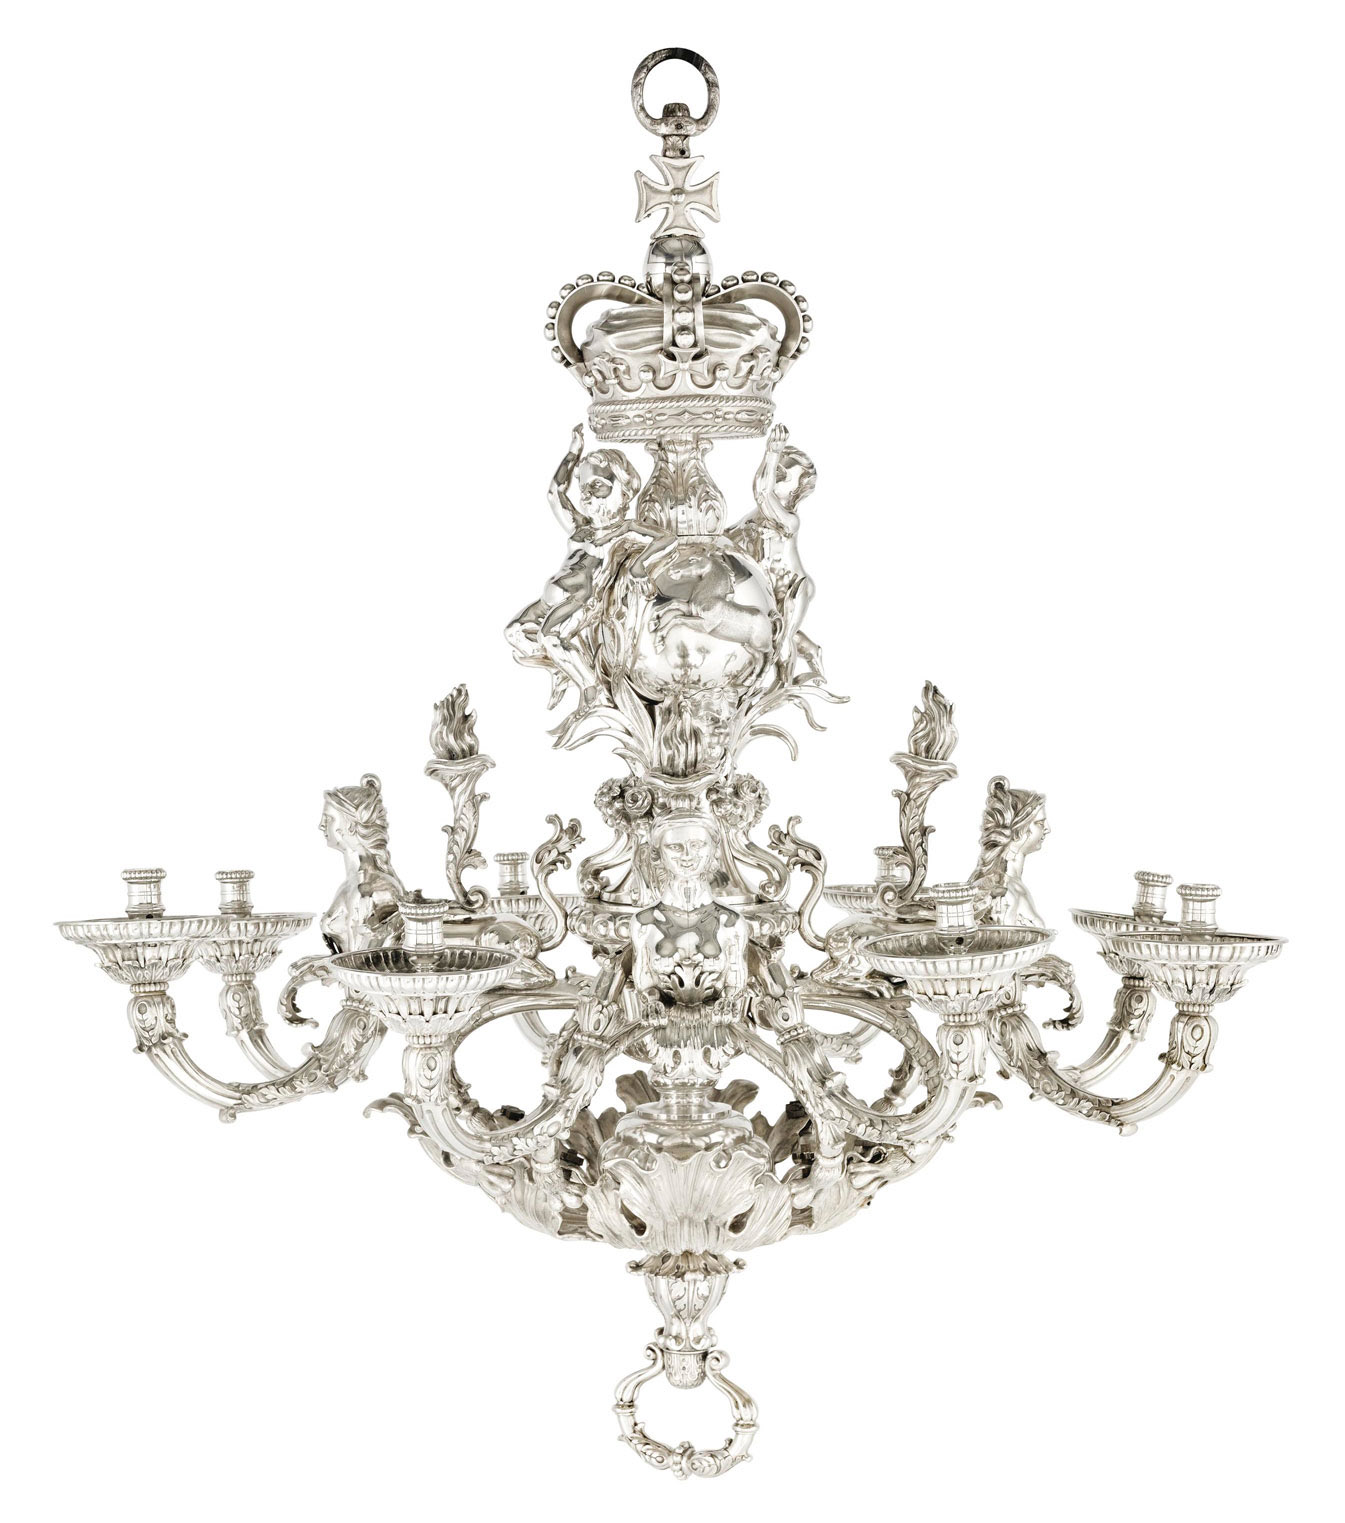 Audio: The Givenchy Royal Hanover Chandelier